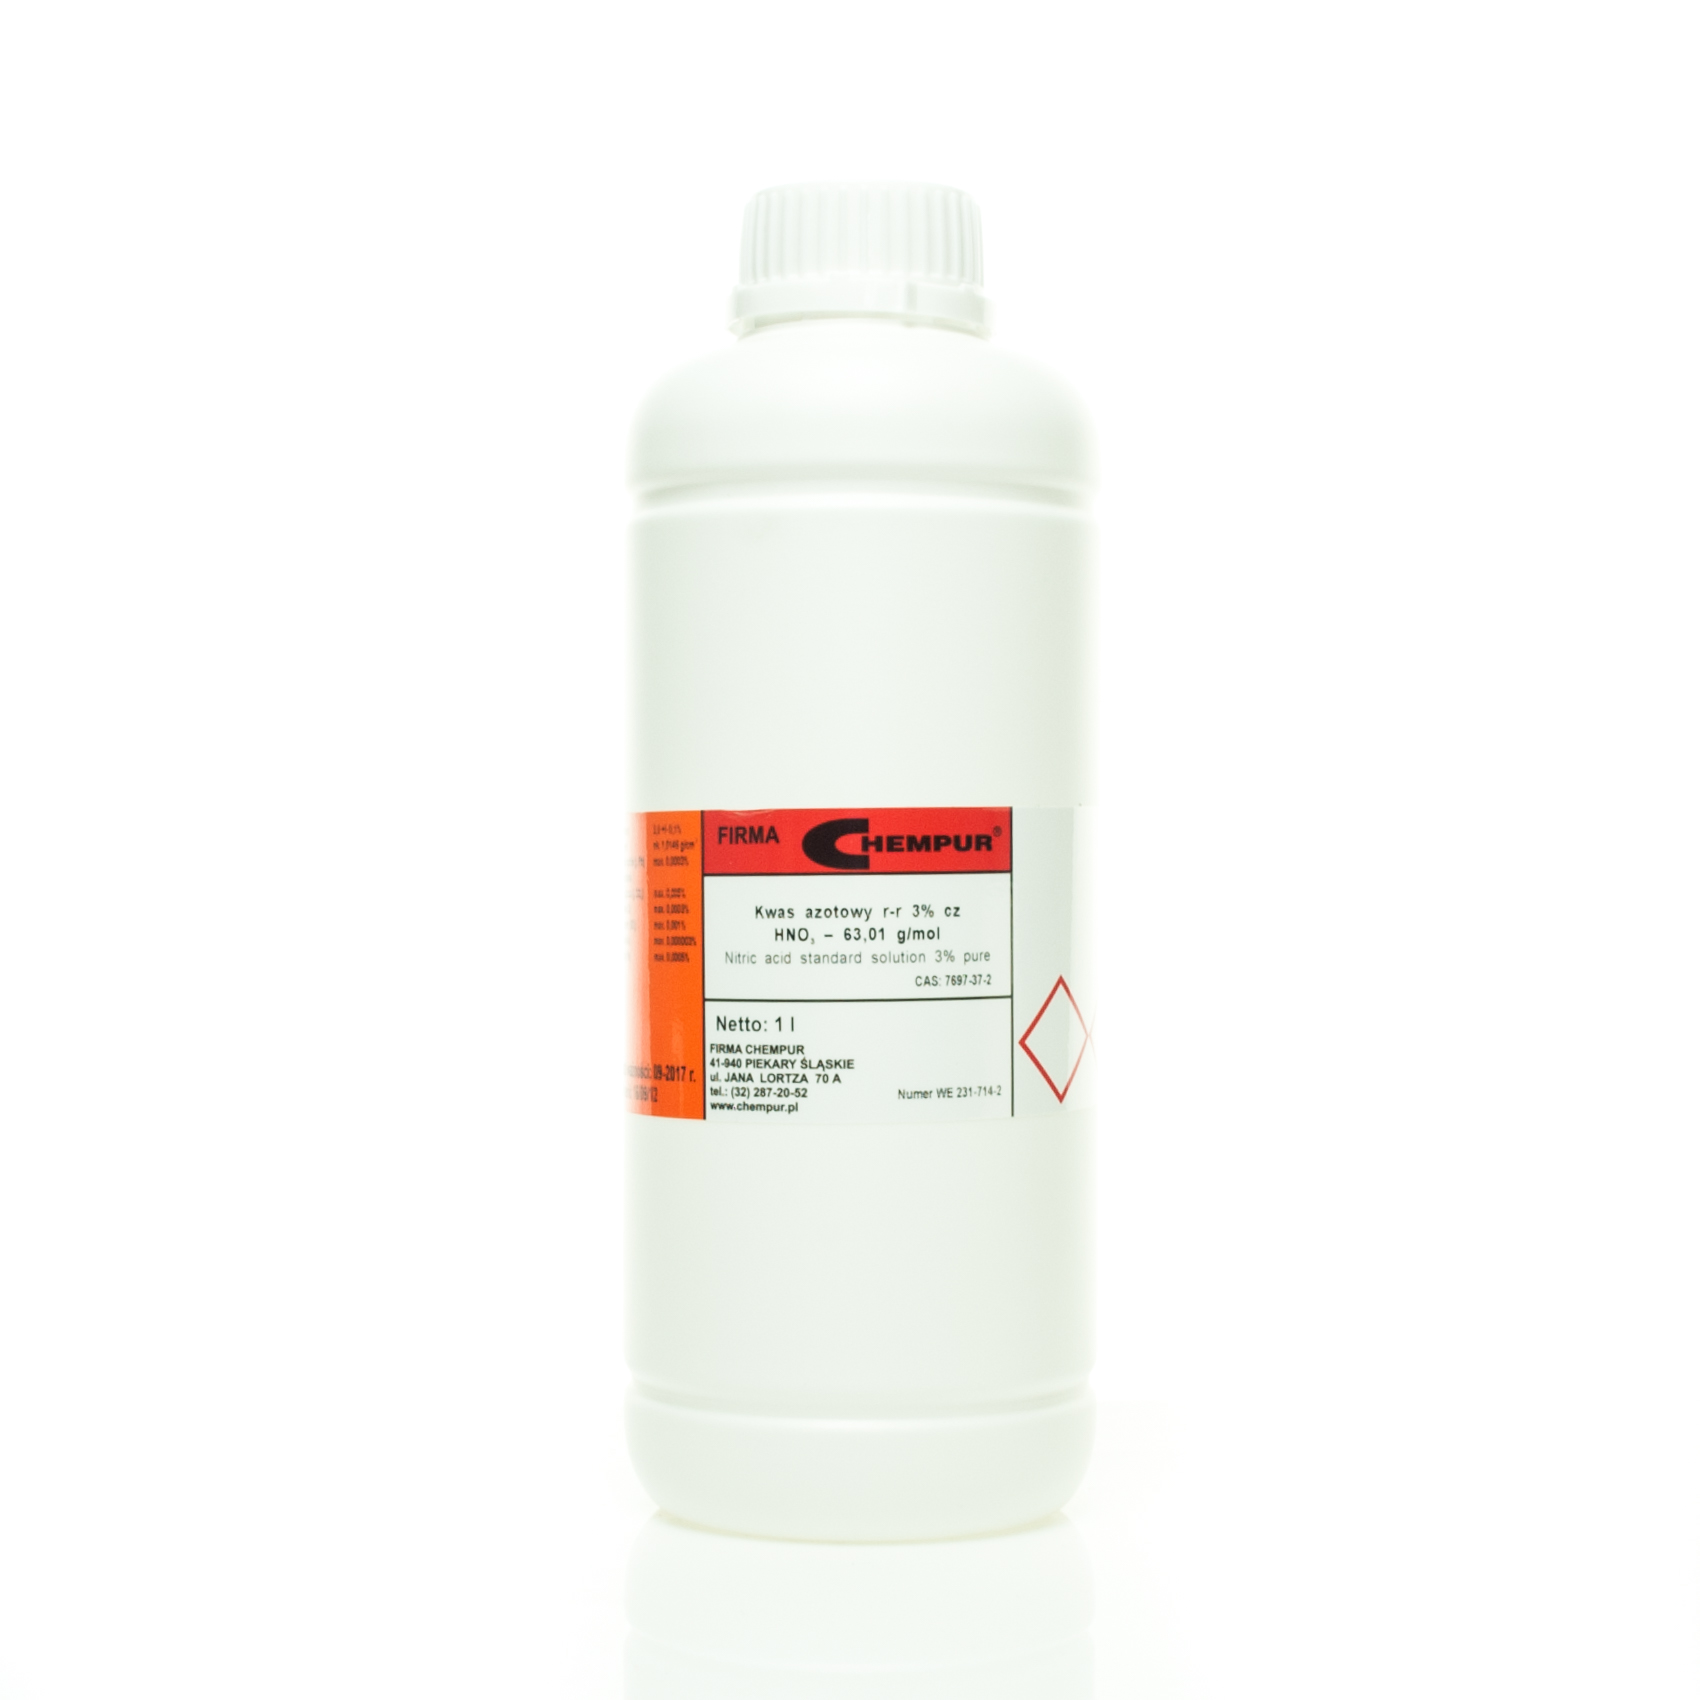 Nitric acid standard solution 3% pure